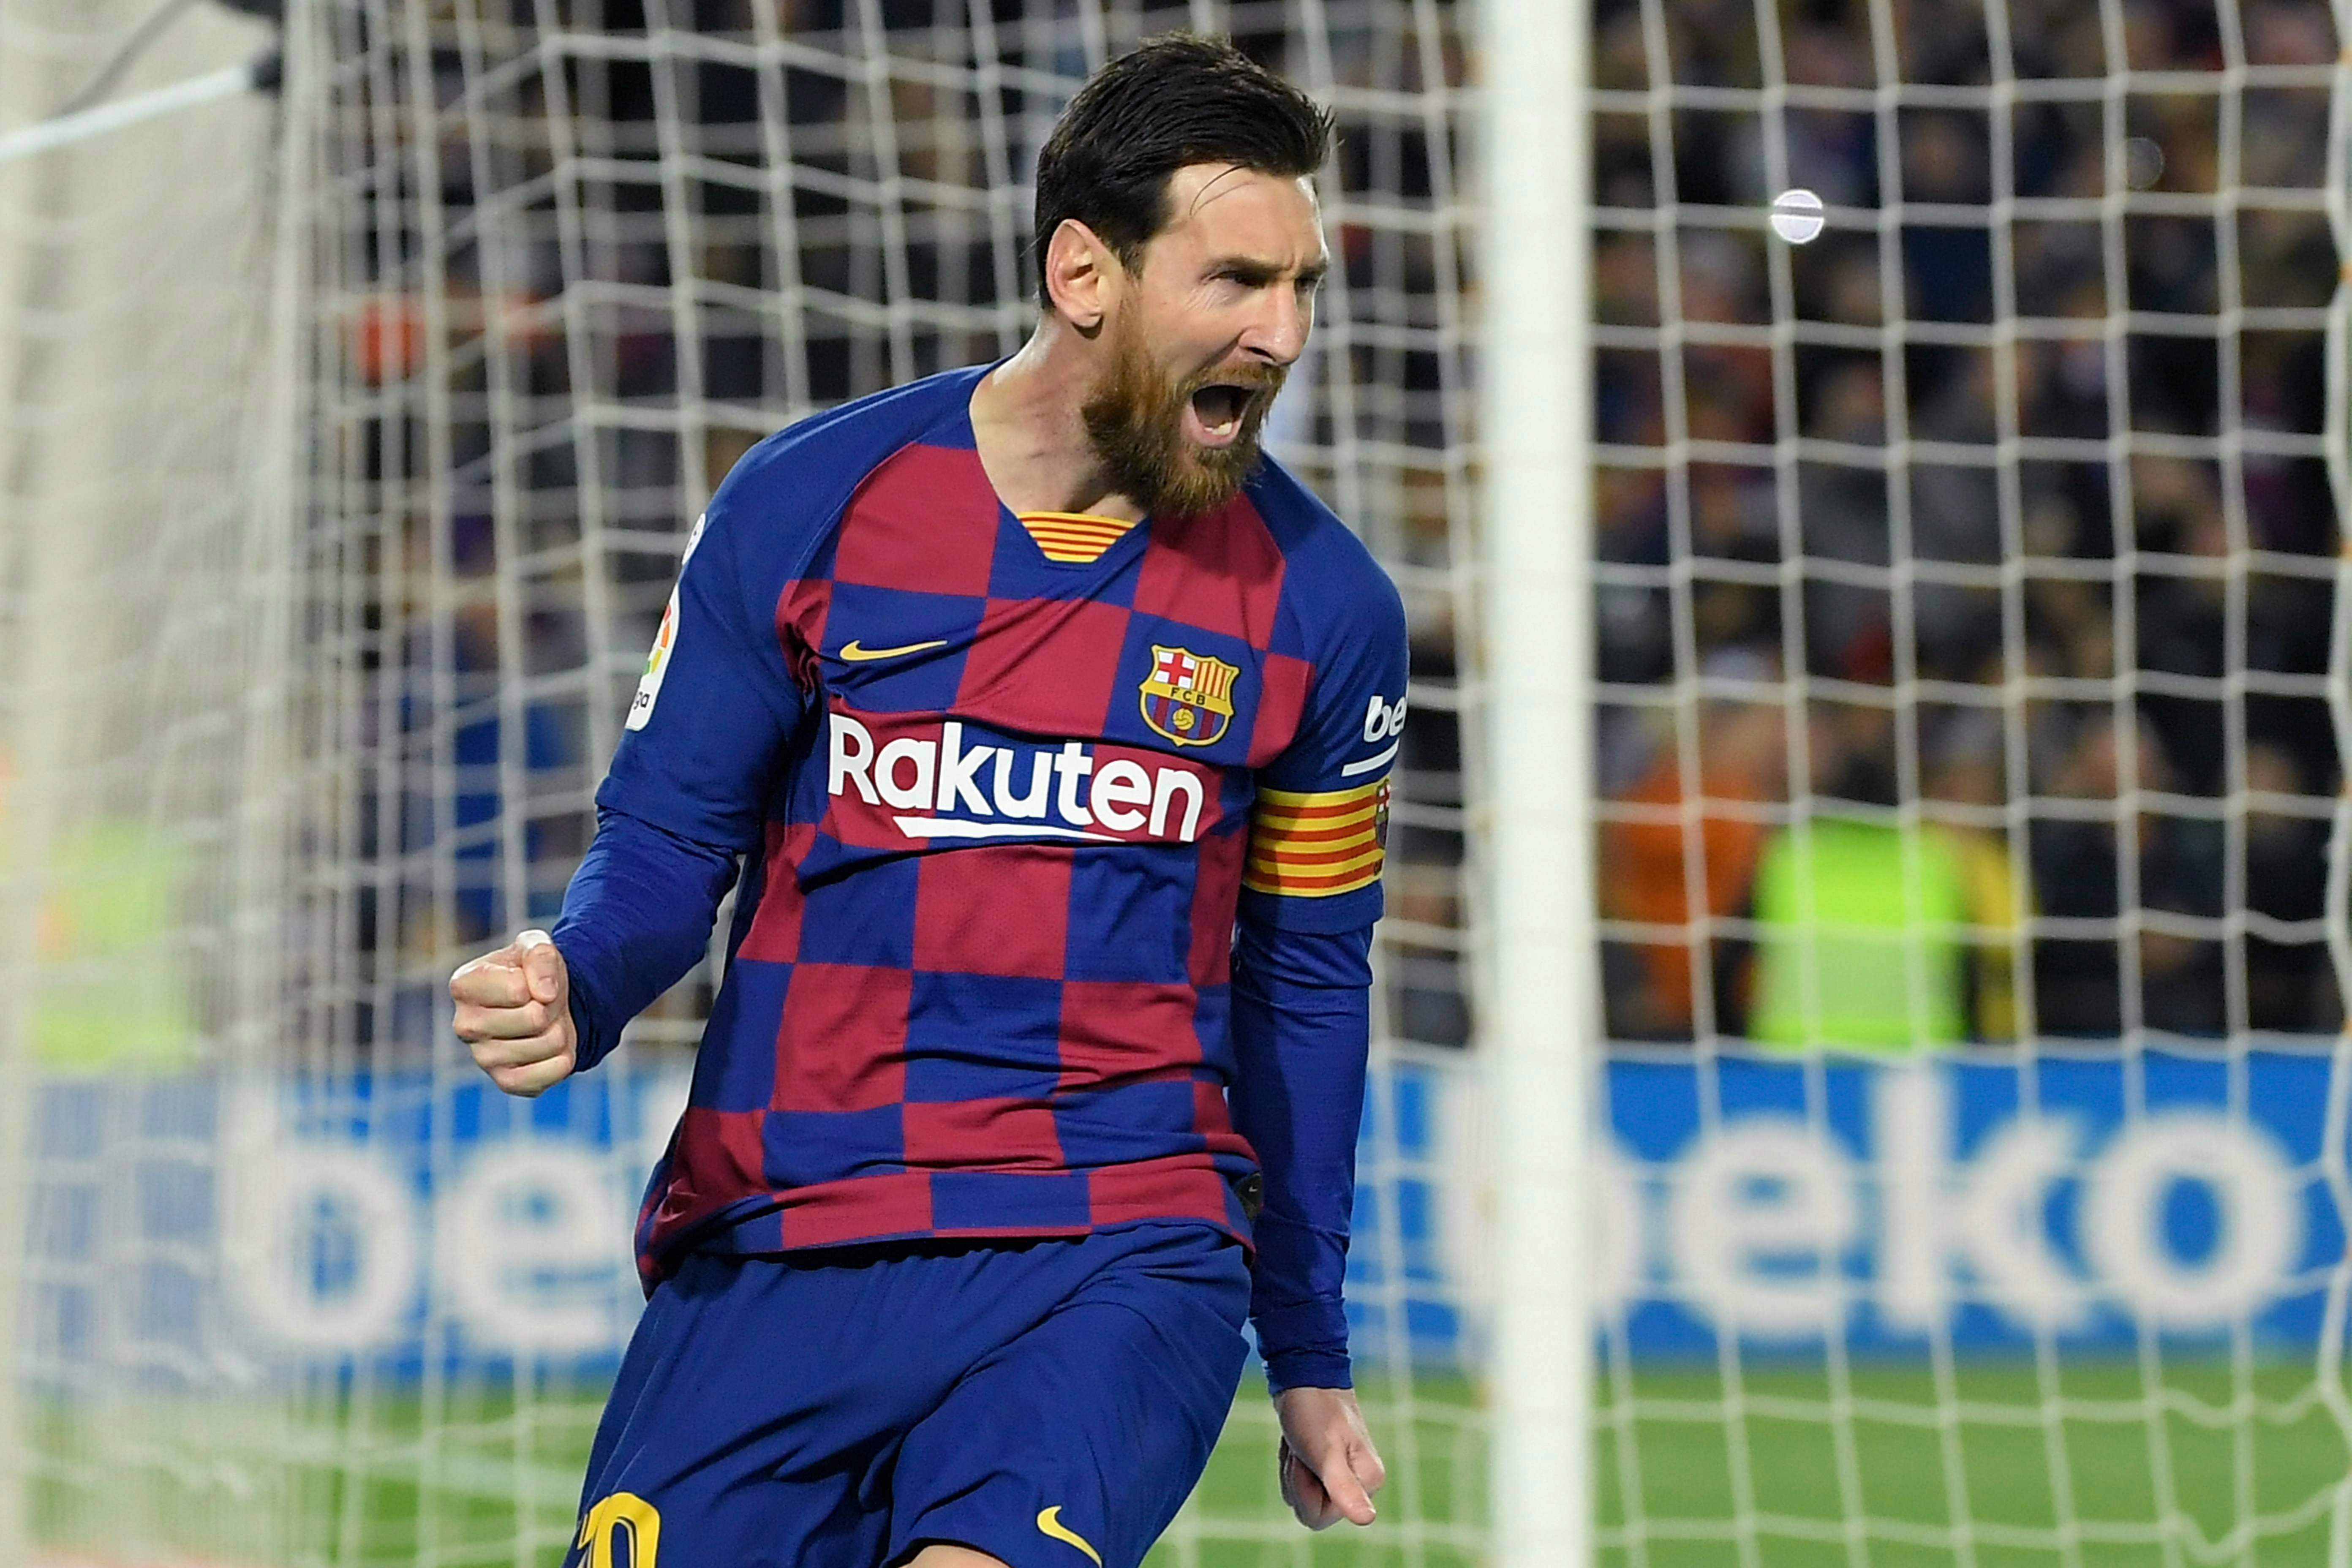 Barcelona and Argentina legend Lionel Messi celebrates yet another goal